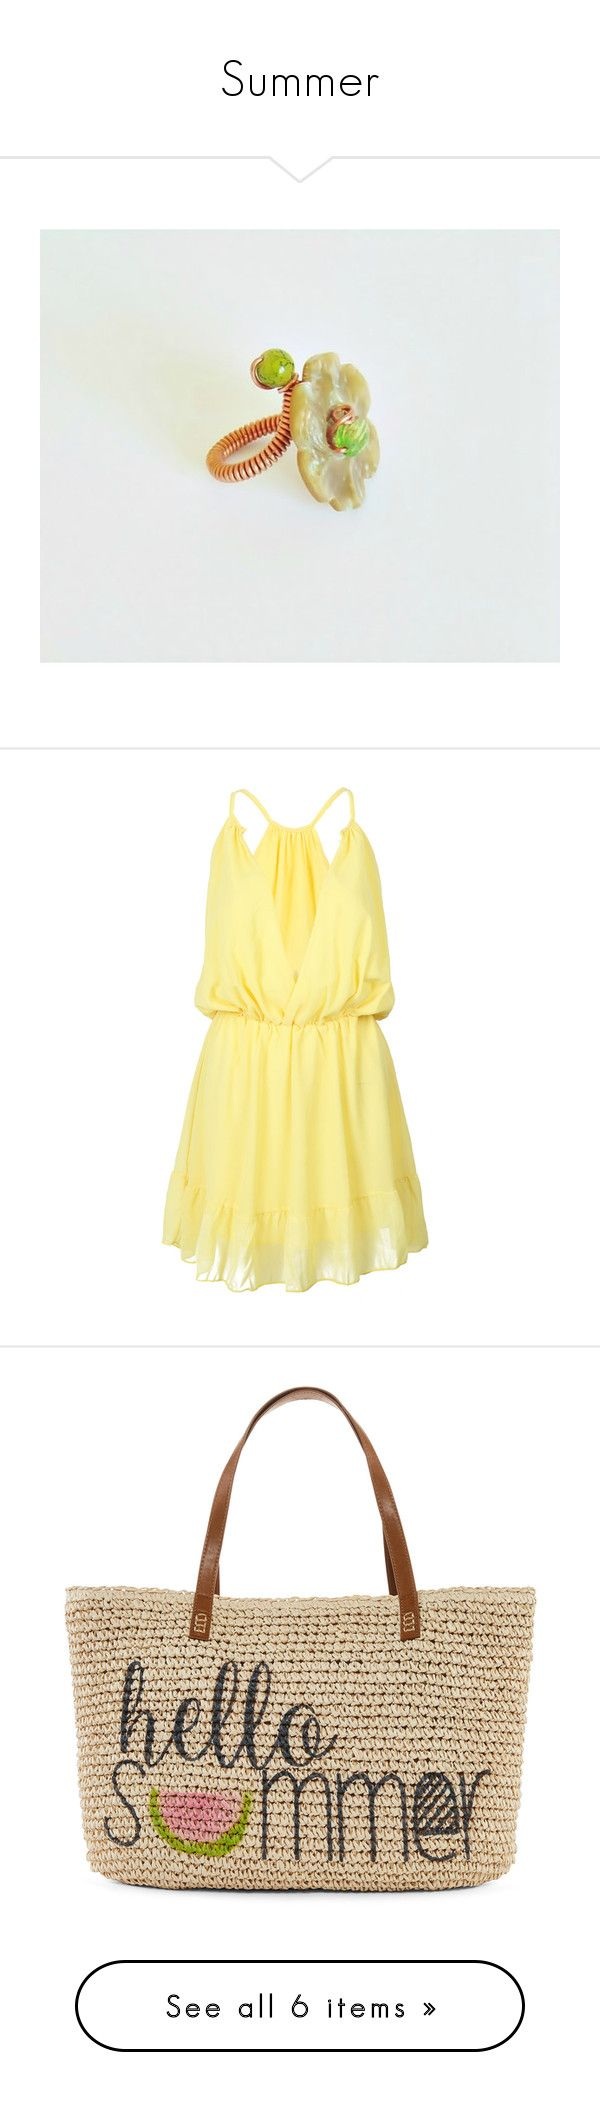 """Summer"" by styledonna on Polyvore featuring jewelry, rings, dresses, vestidos, elastic dress, beige dress, plunge neck dress, yellow day dress, plunging neckline dress i bags"